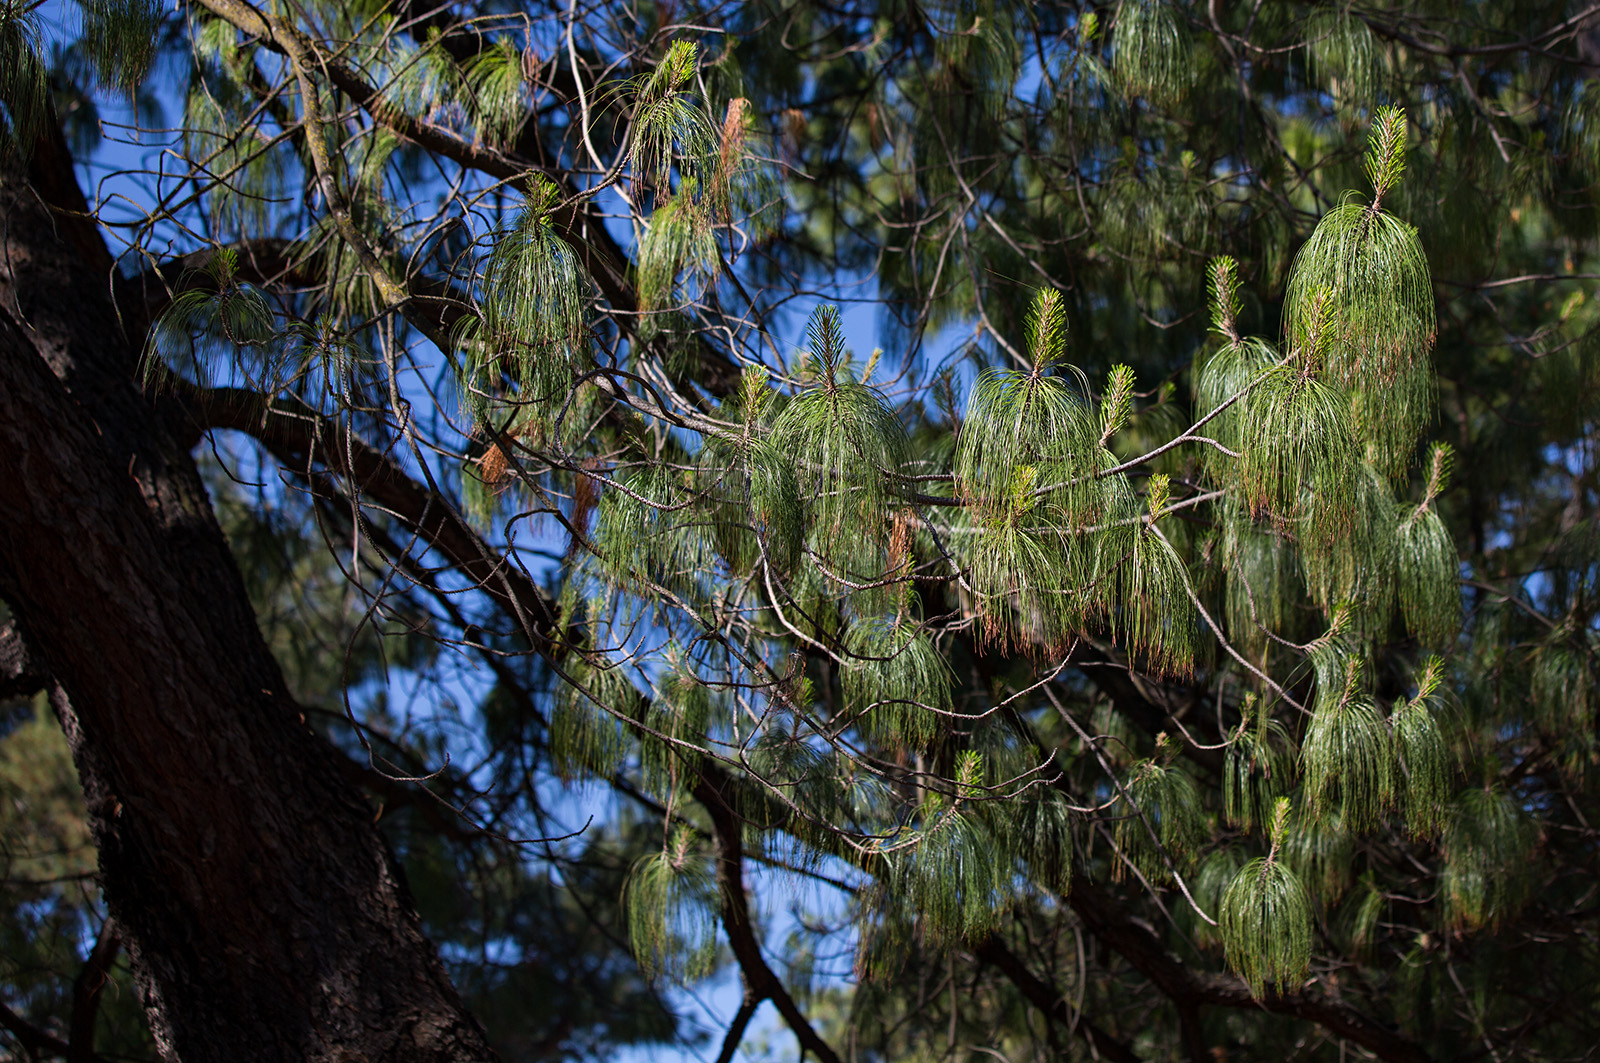 A branch of Pinus pseudostrobus var. apulcensis